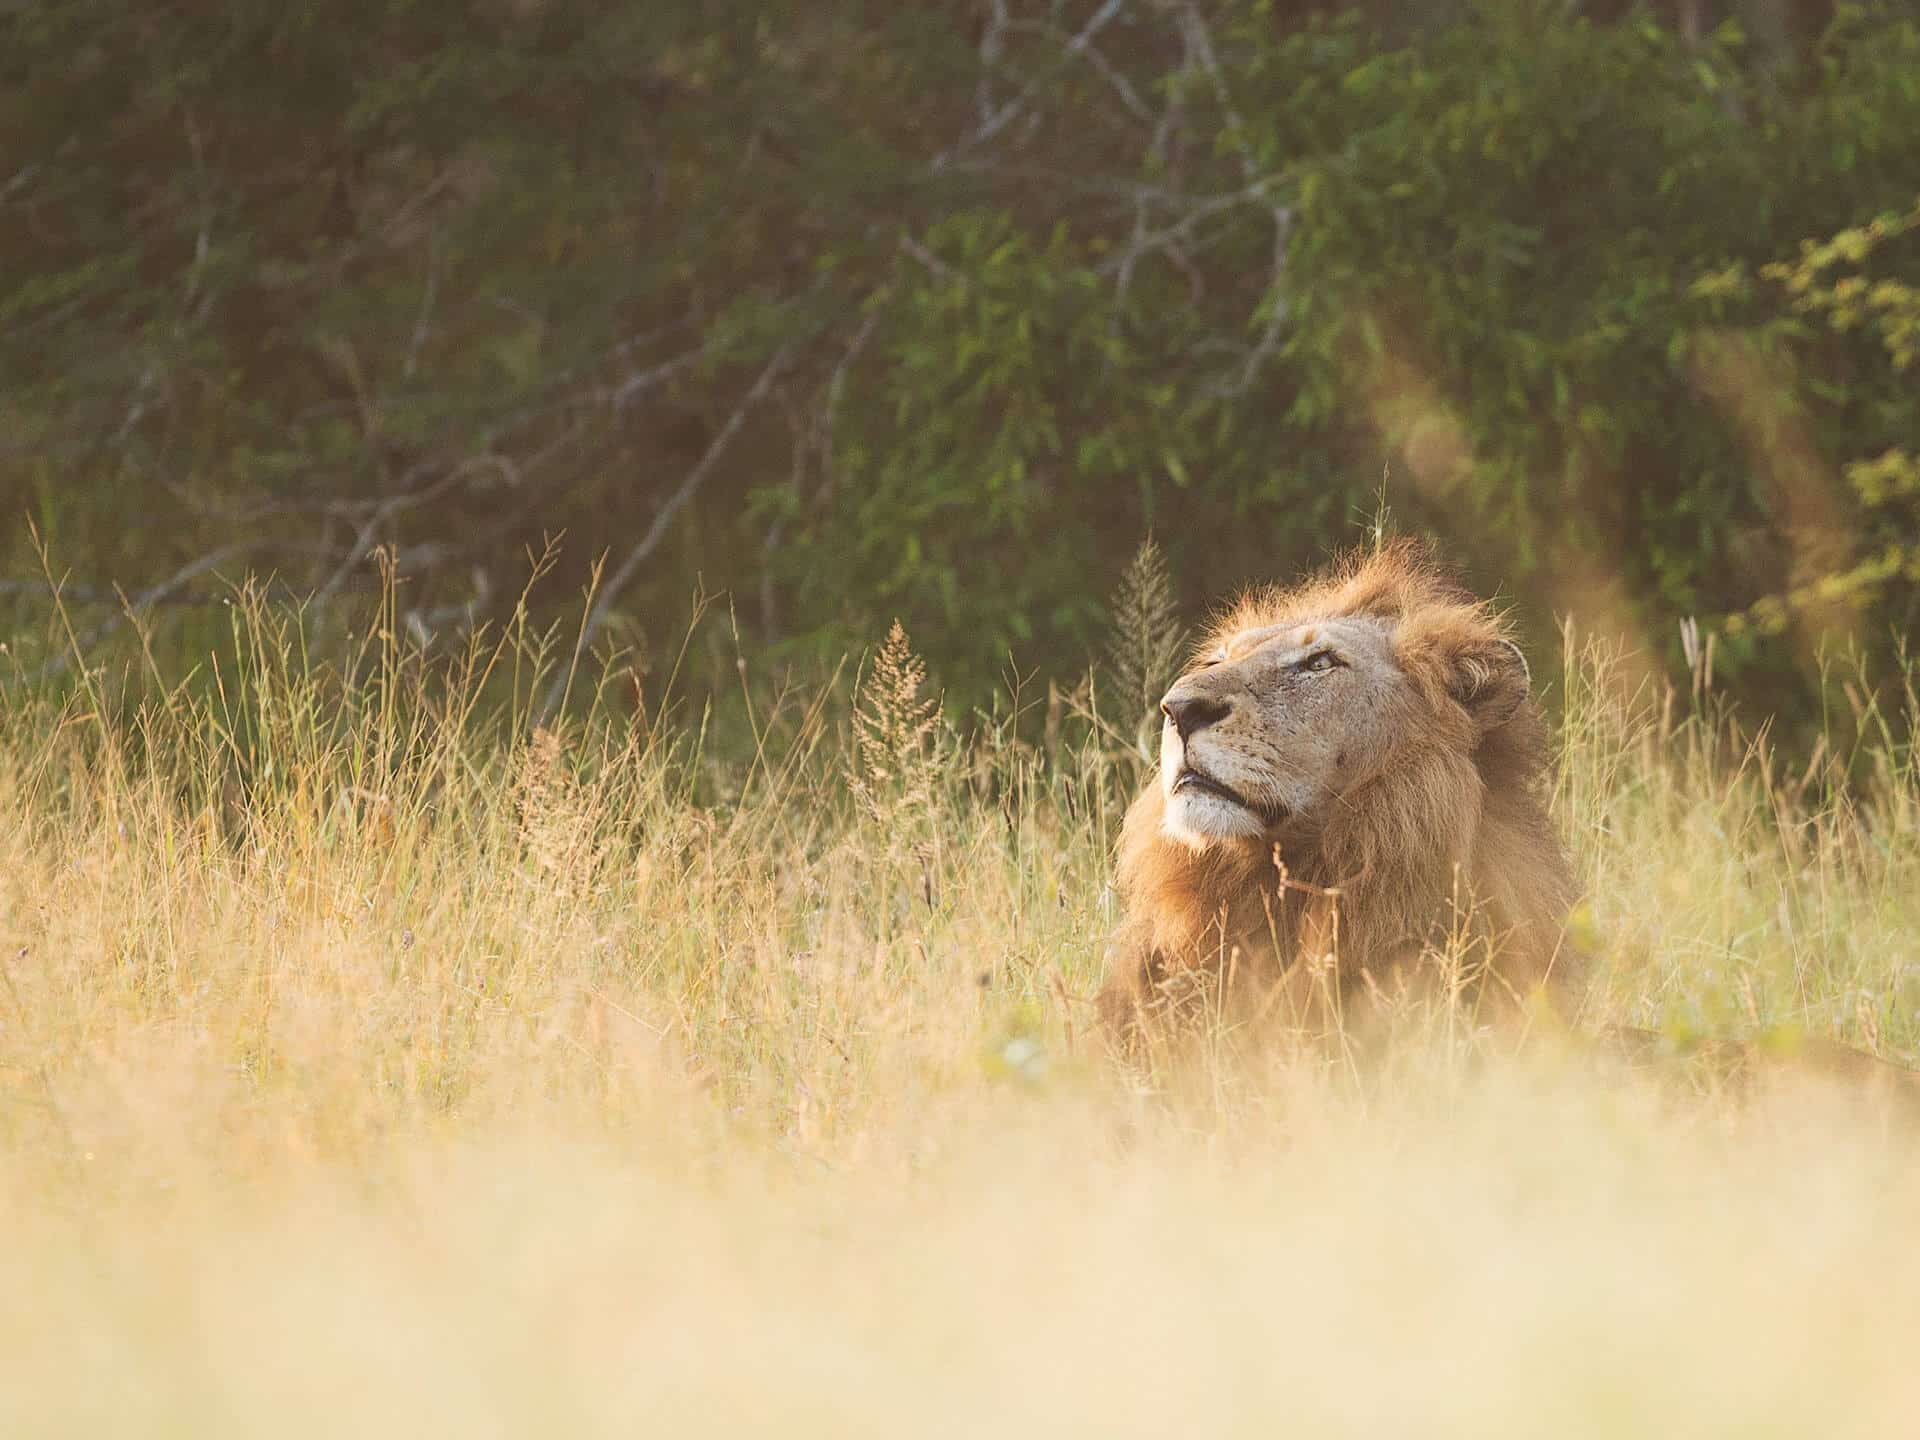 Lion lying in grass in safari part